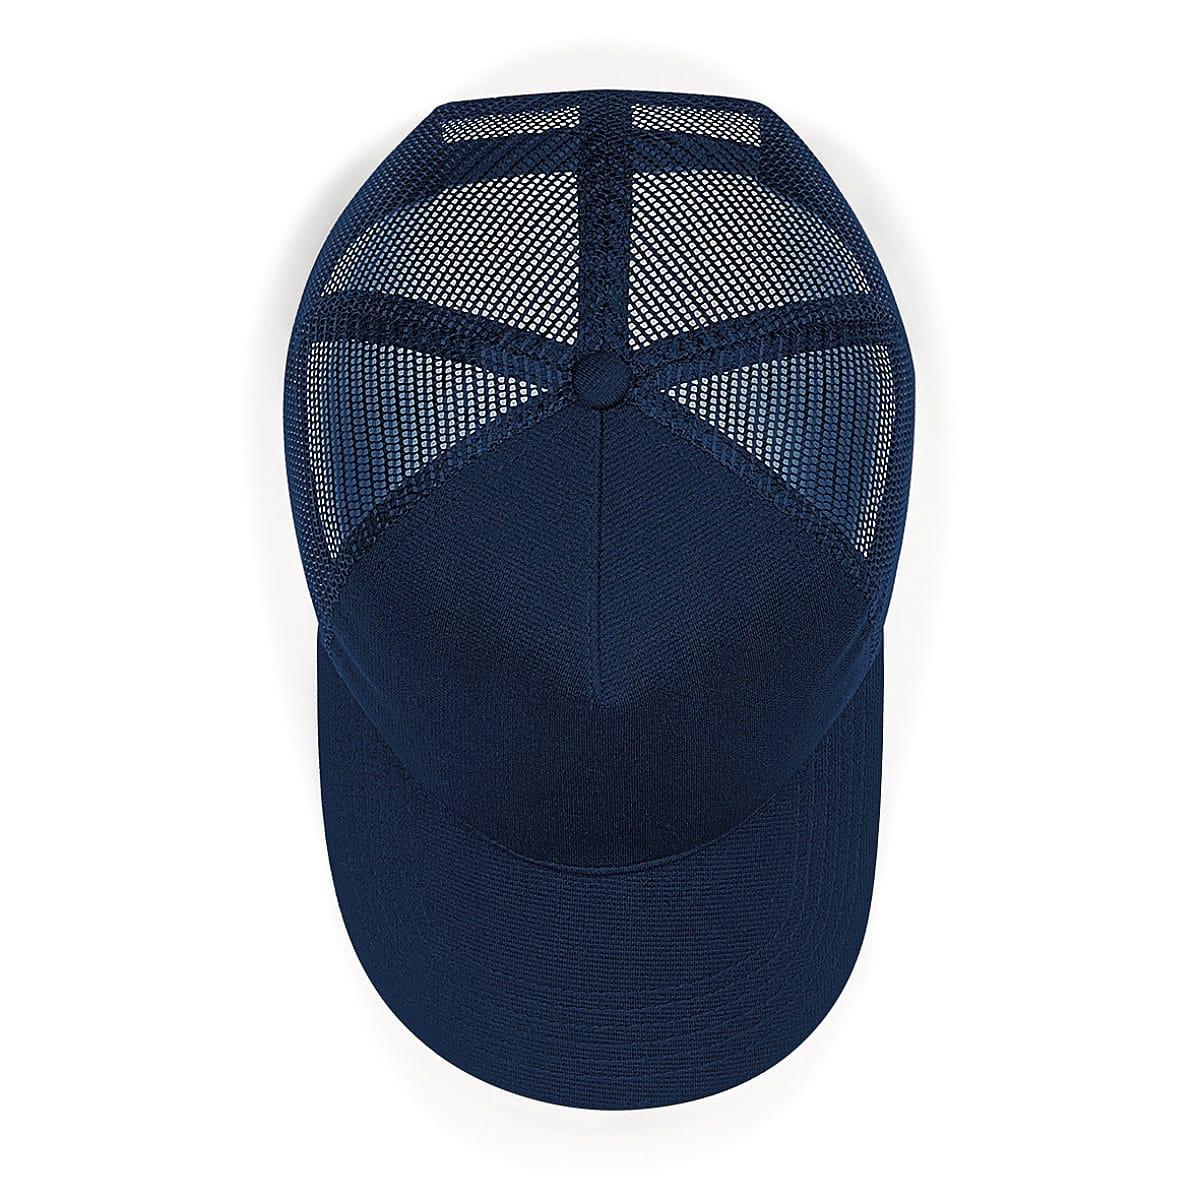 Beechfield Microknit Snapback Trucker Cap in French Navy (Product Code: B642)